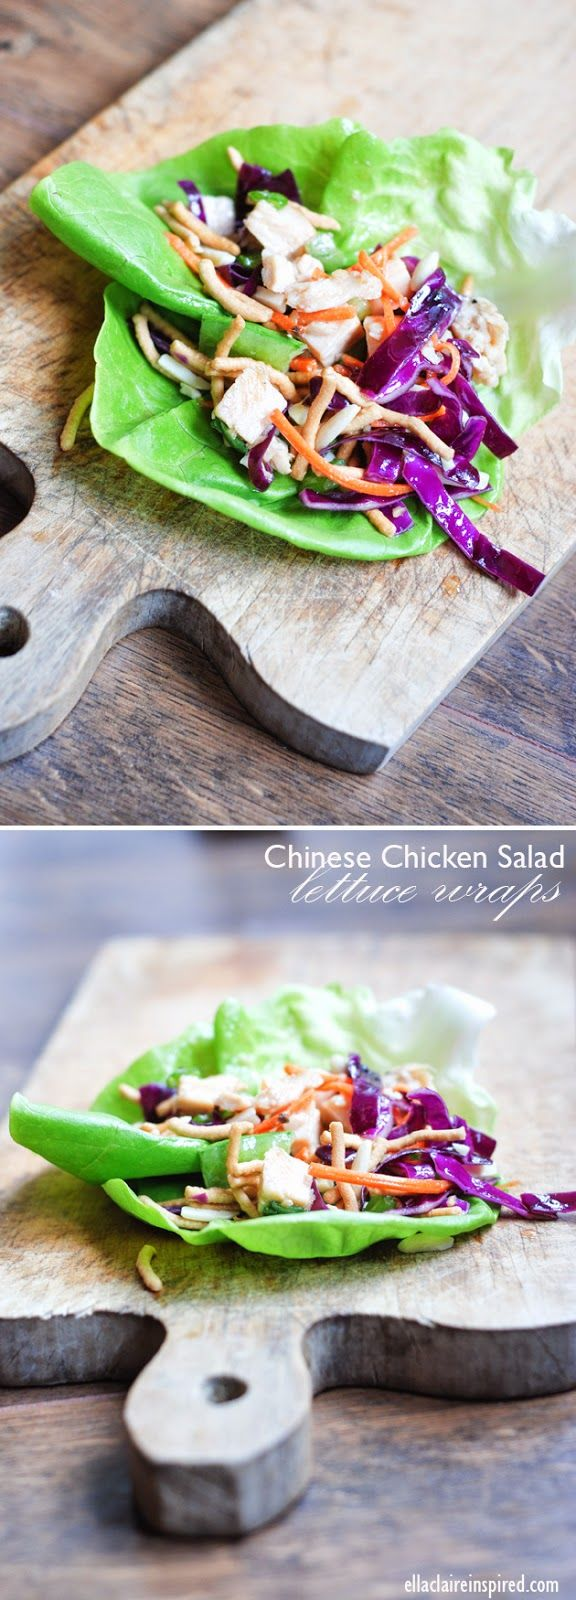 Light and Delicious Chinese Chicken Salad Lettuce Wraps | Homemade Asian Dressing